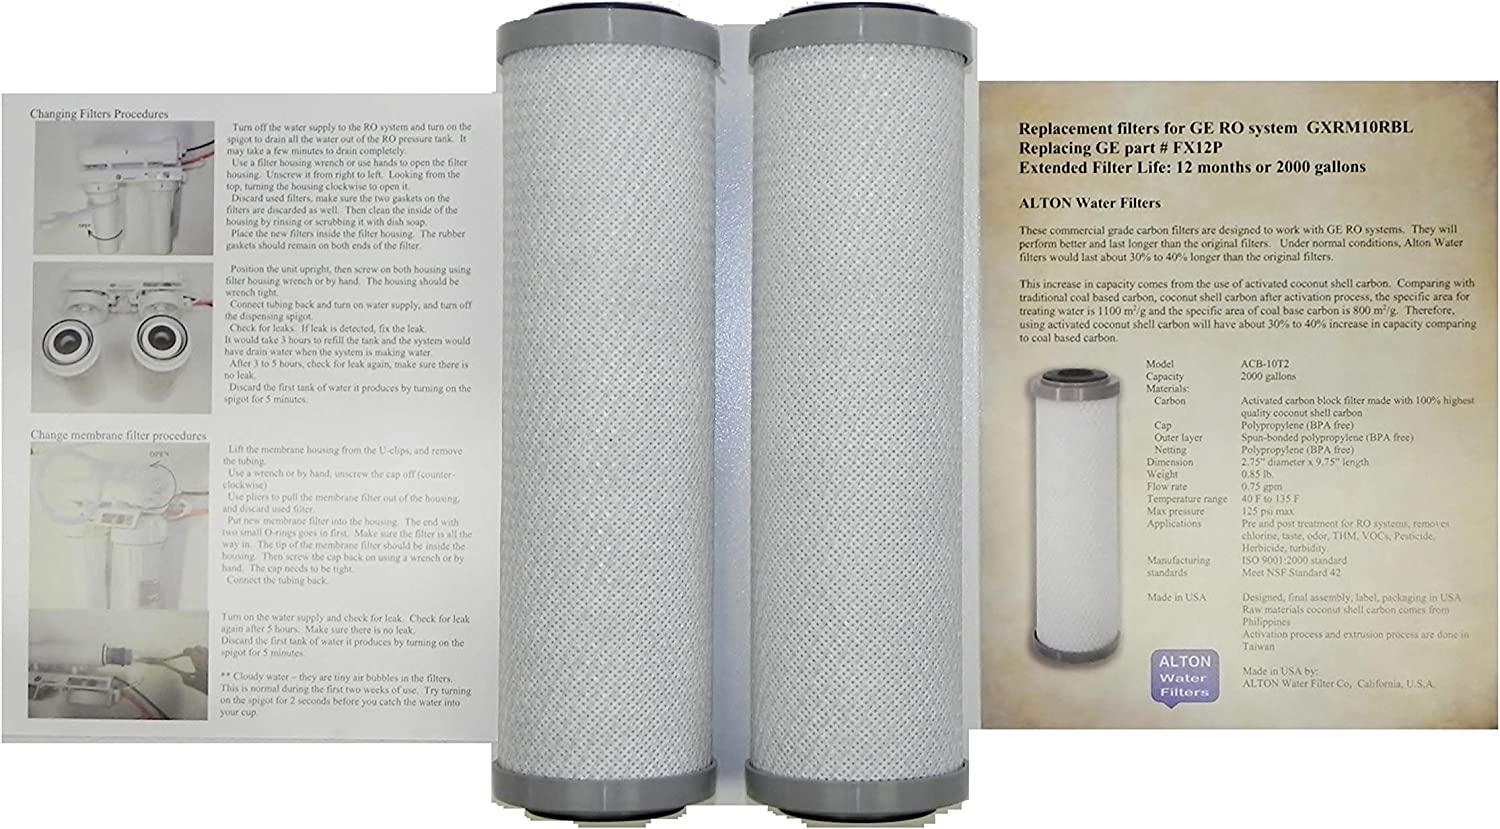 Compatible GE FX12P Pre & Post Replacement Filter cartridges, 2 Filters for GE GXRM10RBL RO System Alton Brand Commercial Grade Extended Service Life Compatible to FX12P FX12M